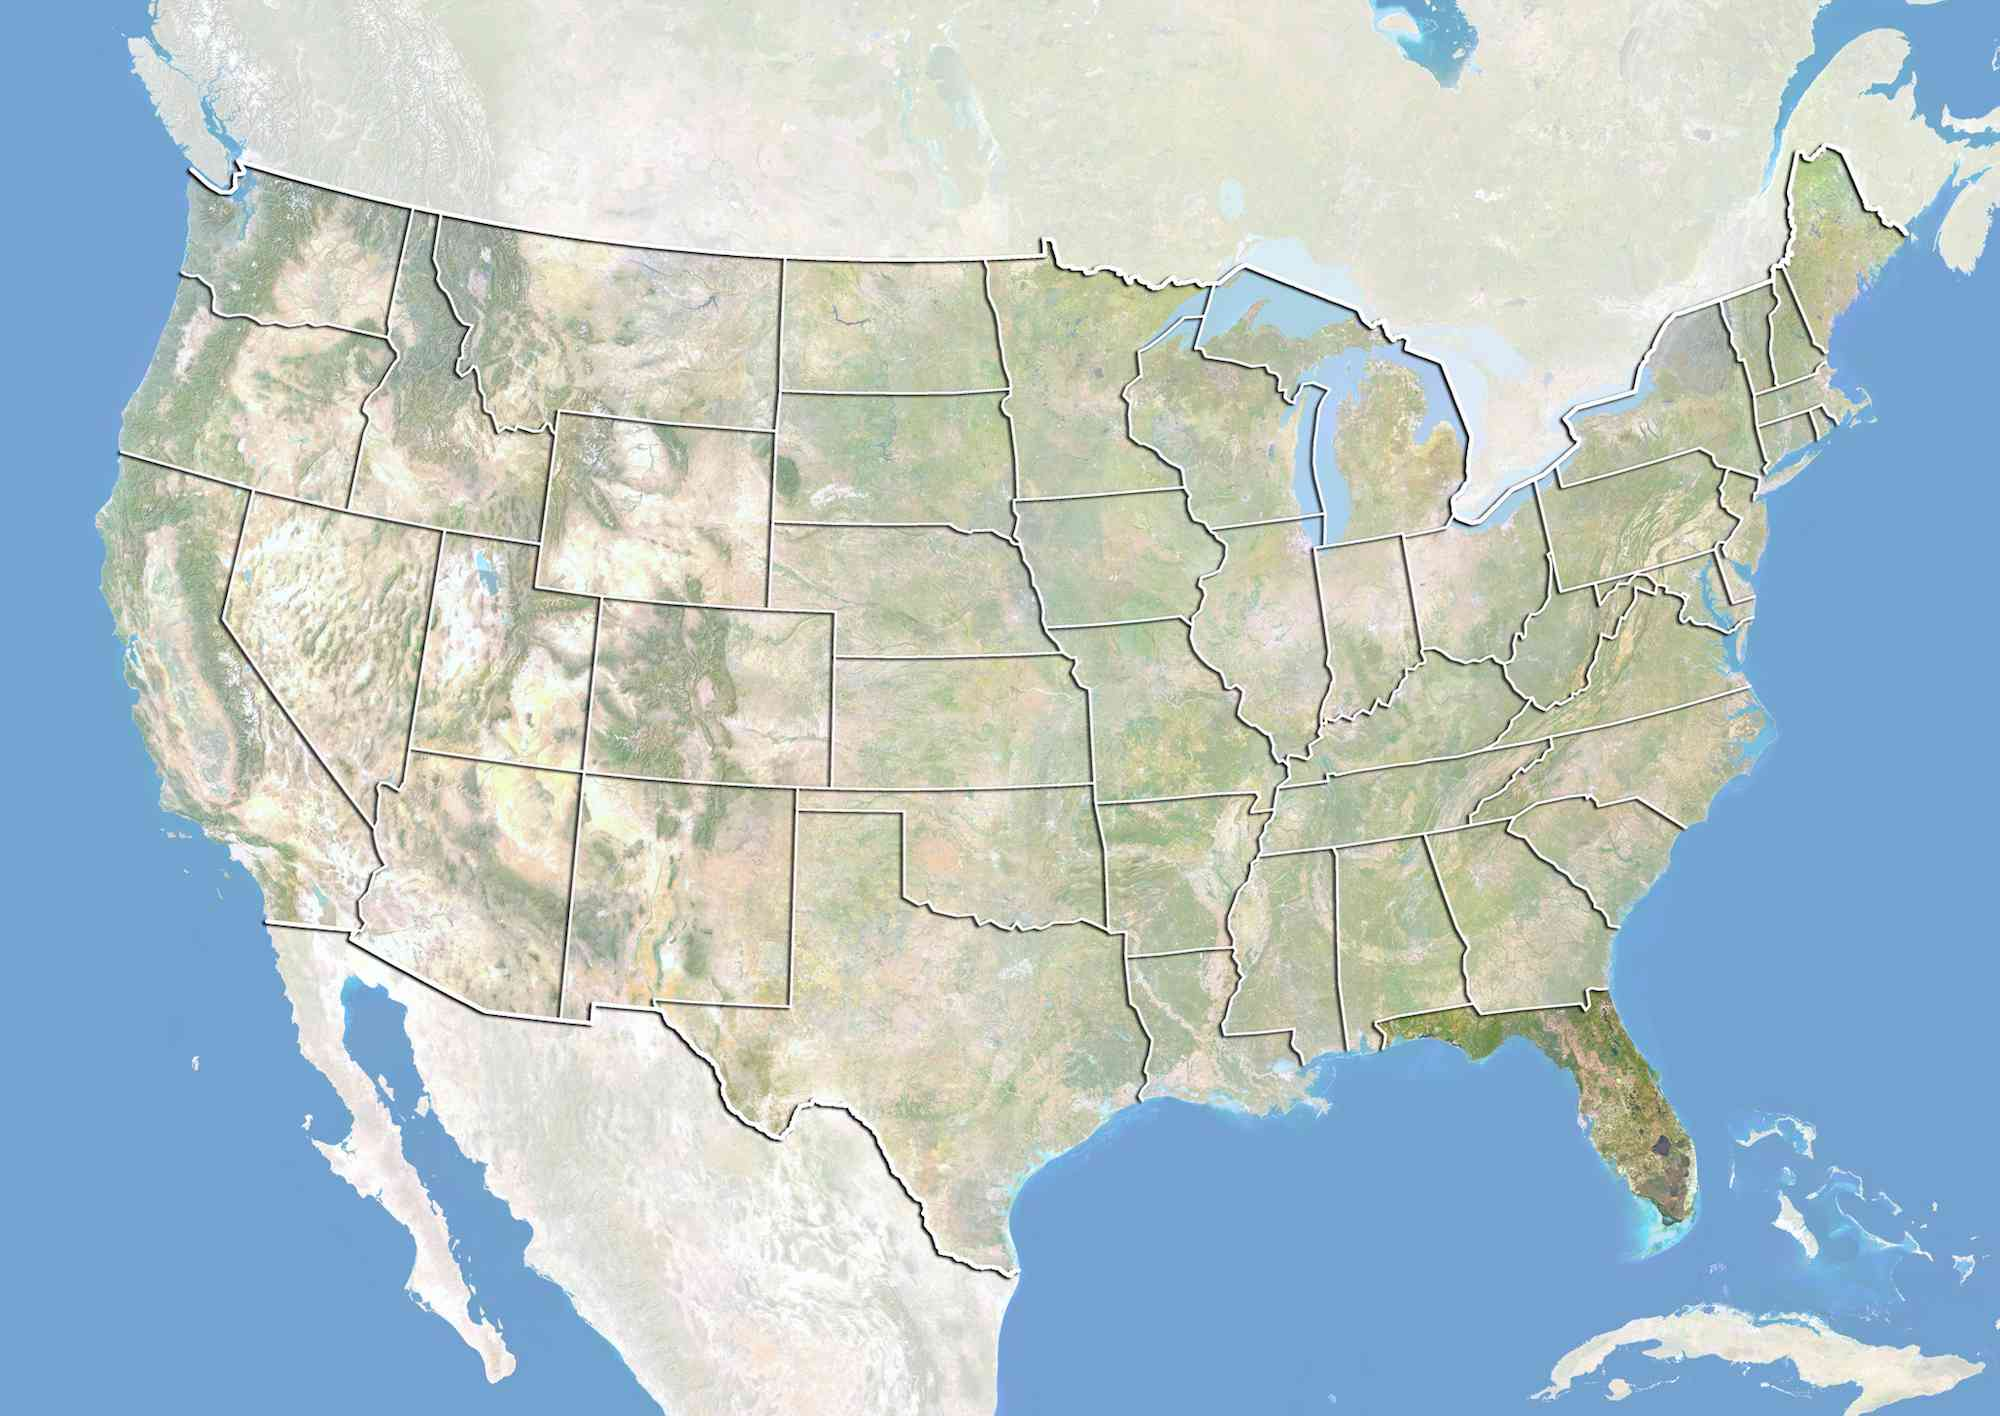 Geography of the Gulf of Mexico Border States